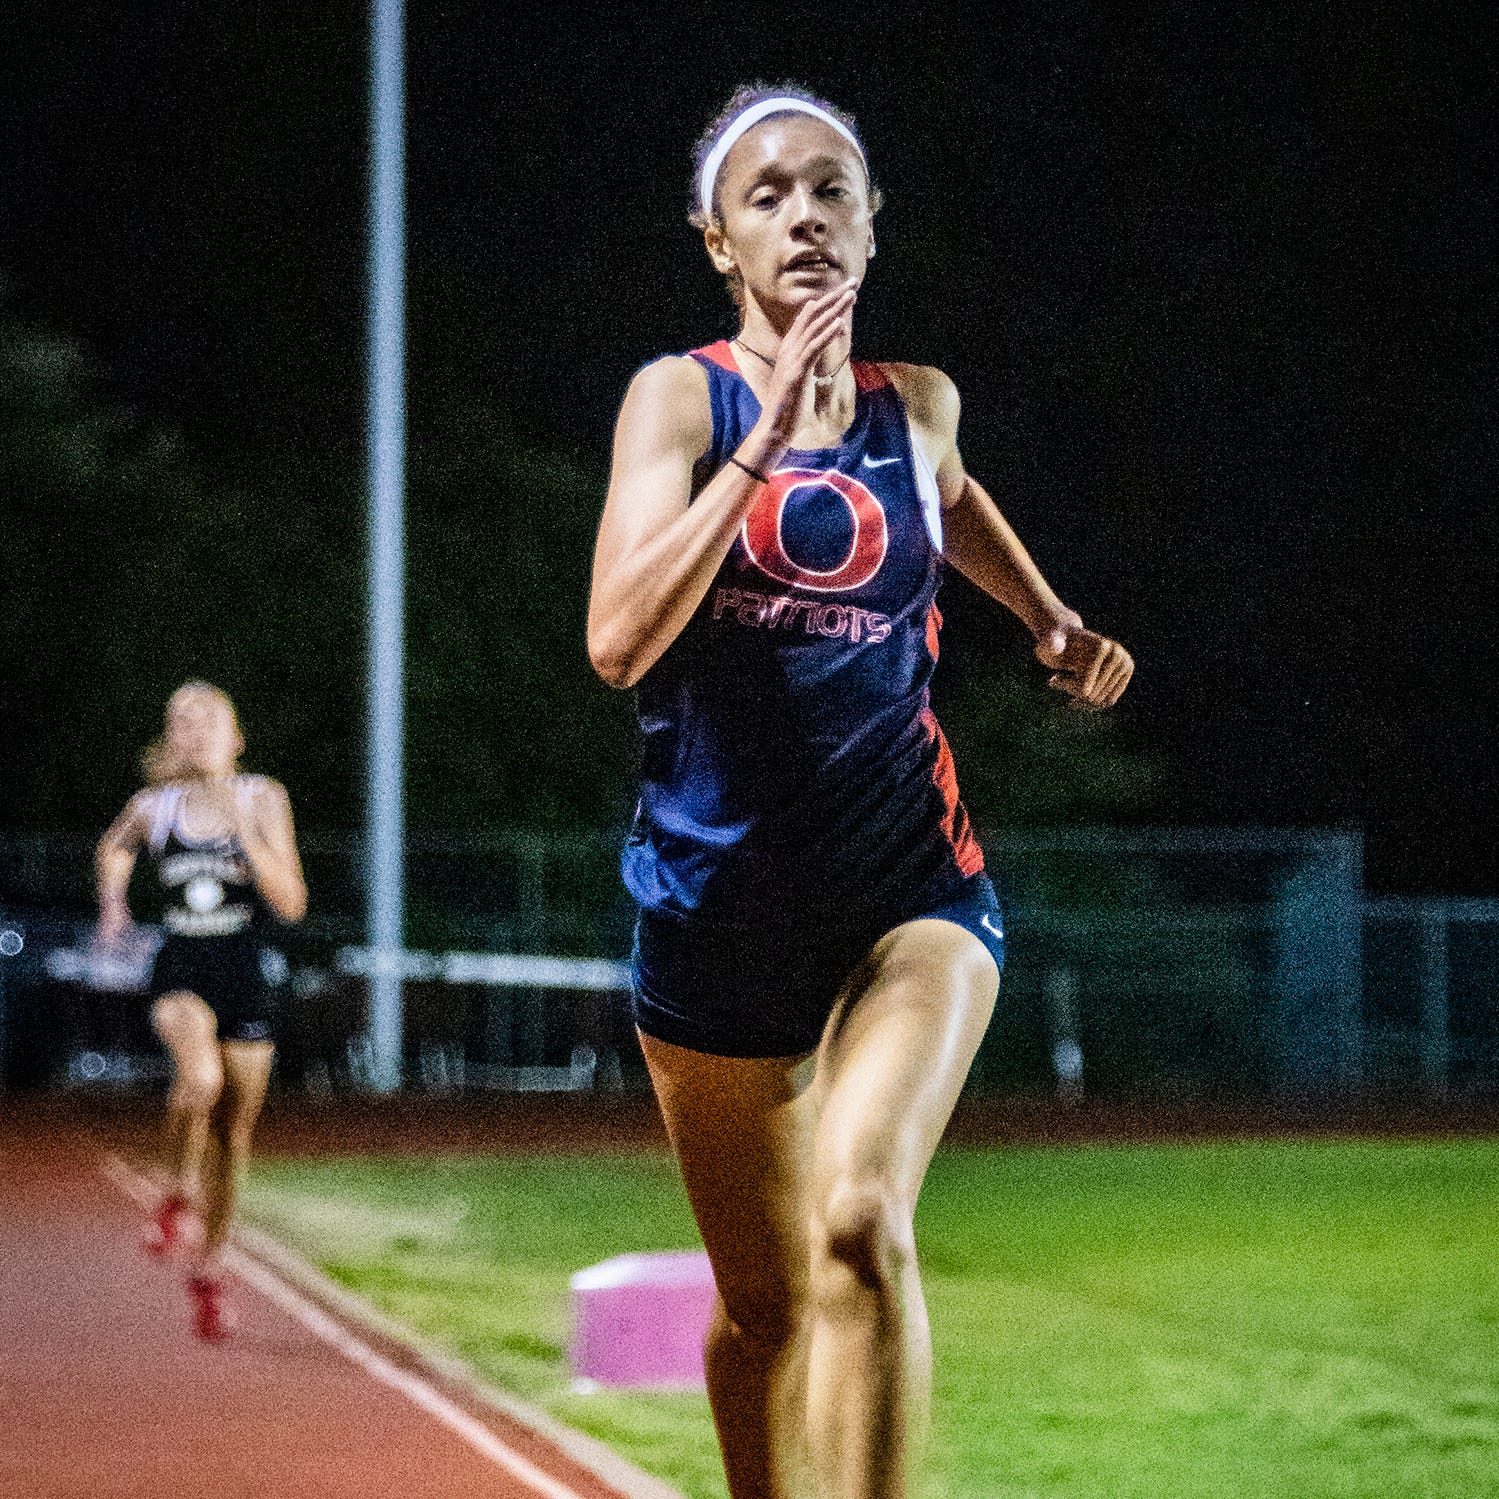 Oakland's Breja Hooks competes in the 1600 meter run. She led the event from start to finish.